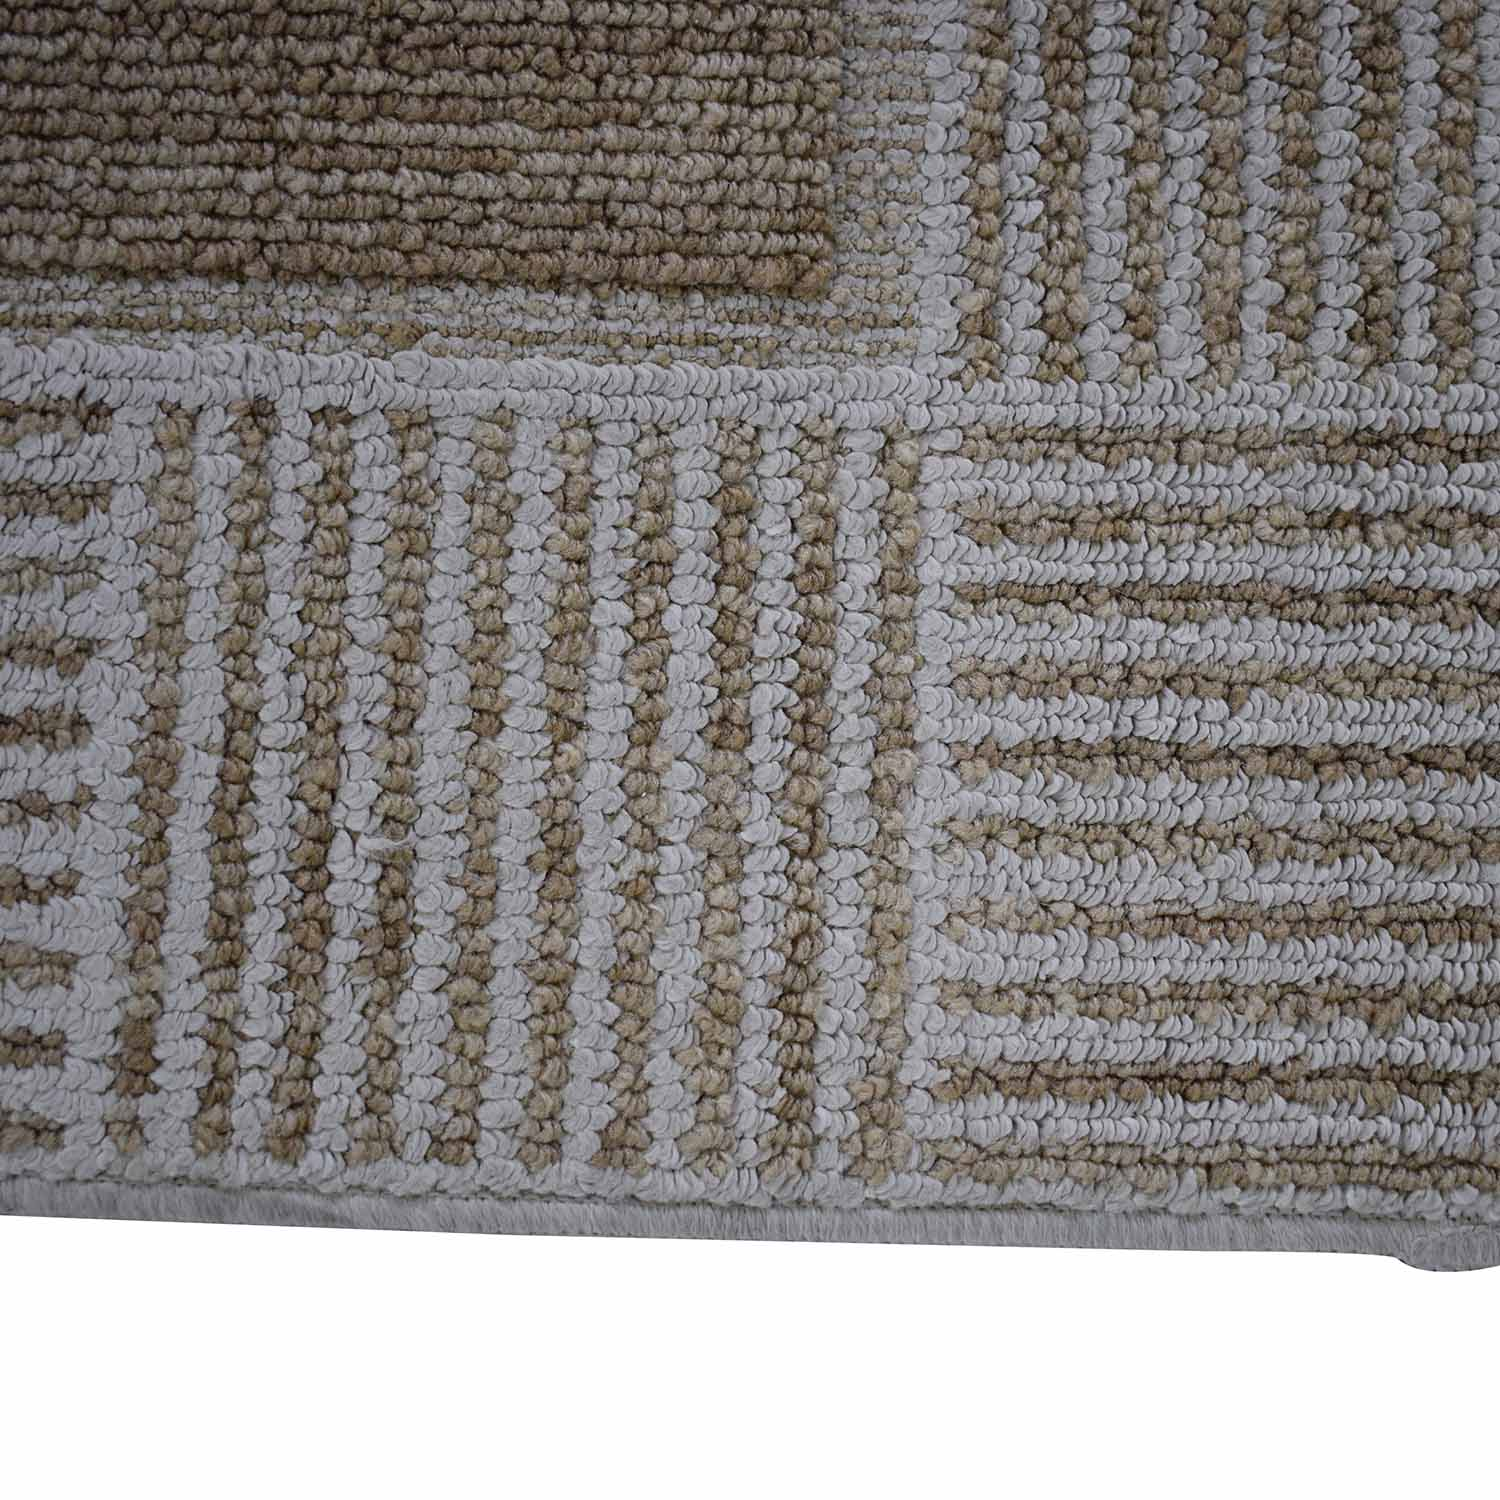 Linear Patterned Rug